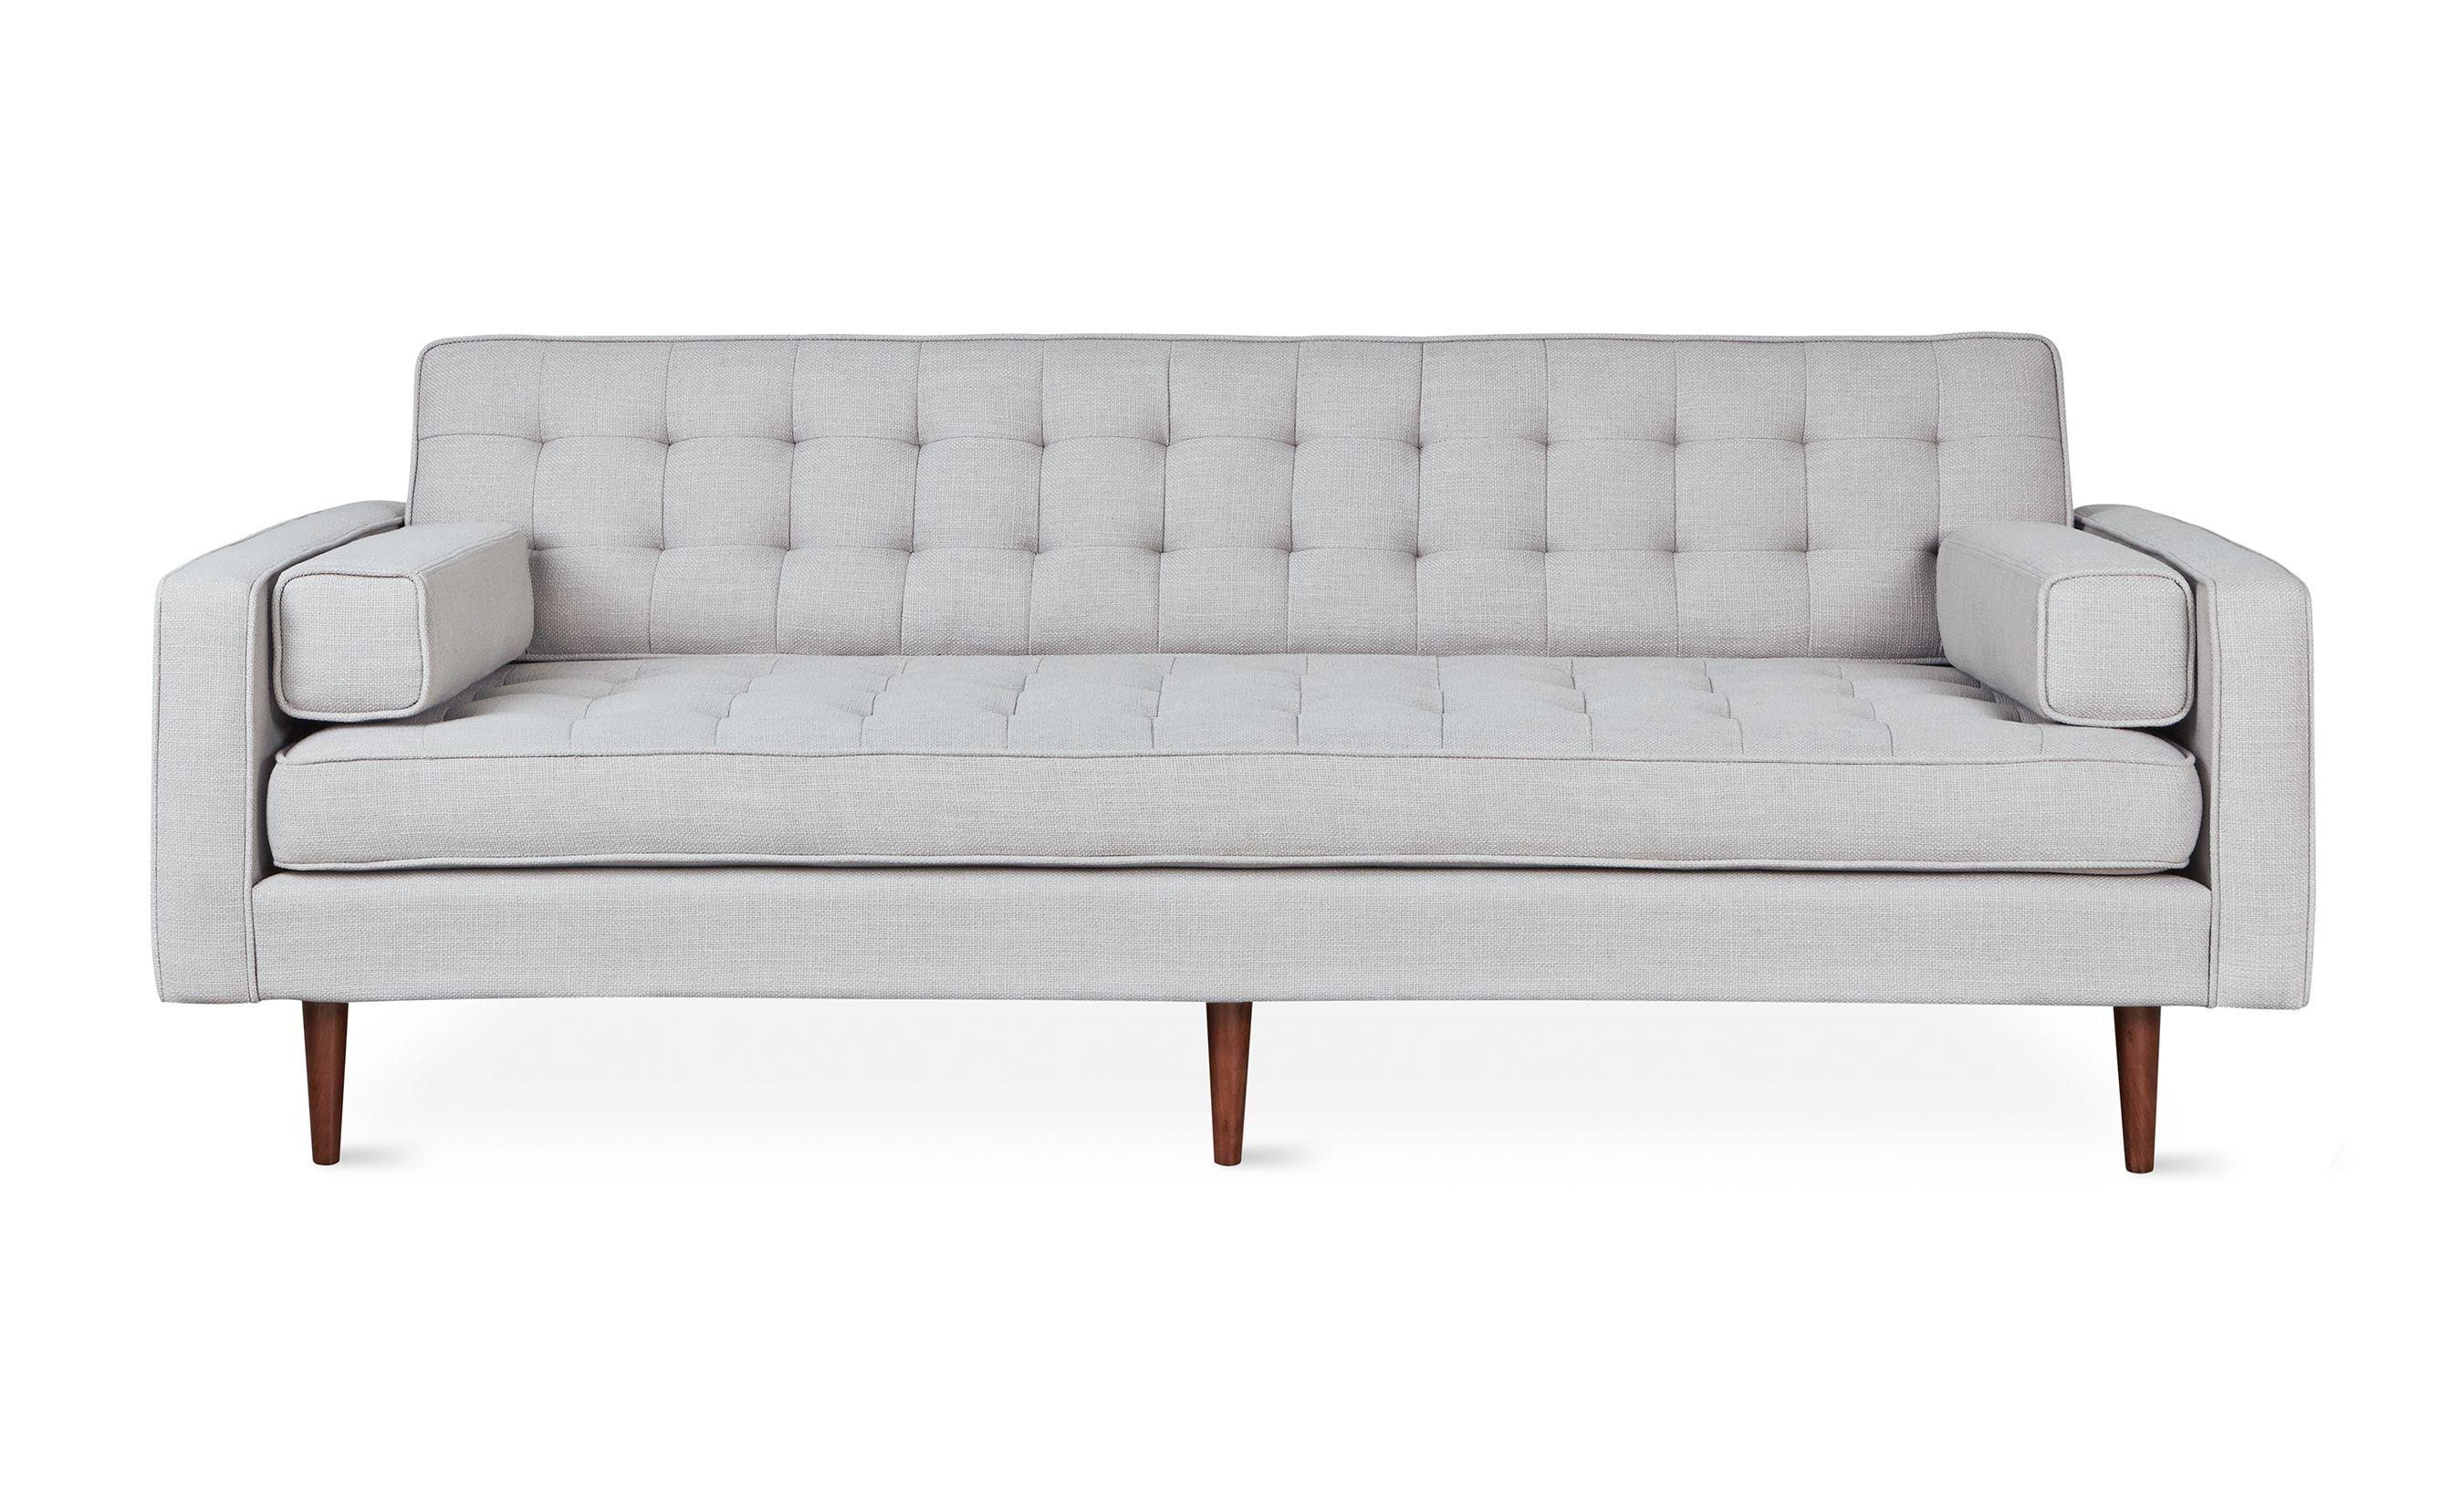 Gus Modern - The Spencer Sofa Has Blind Tufted Seat And